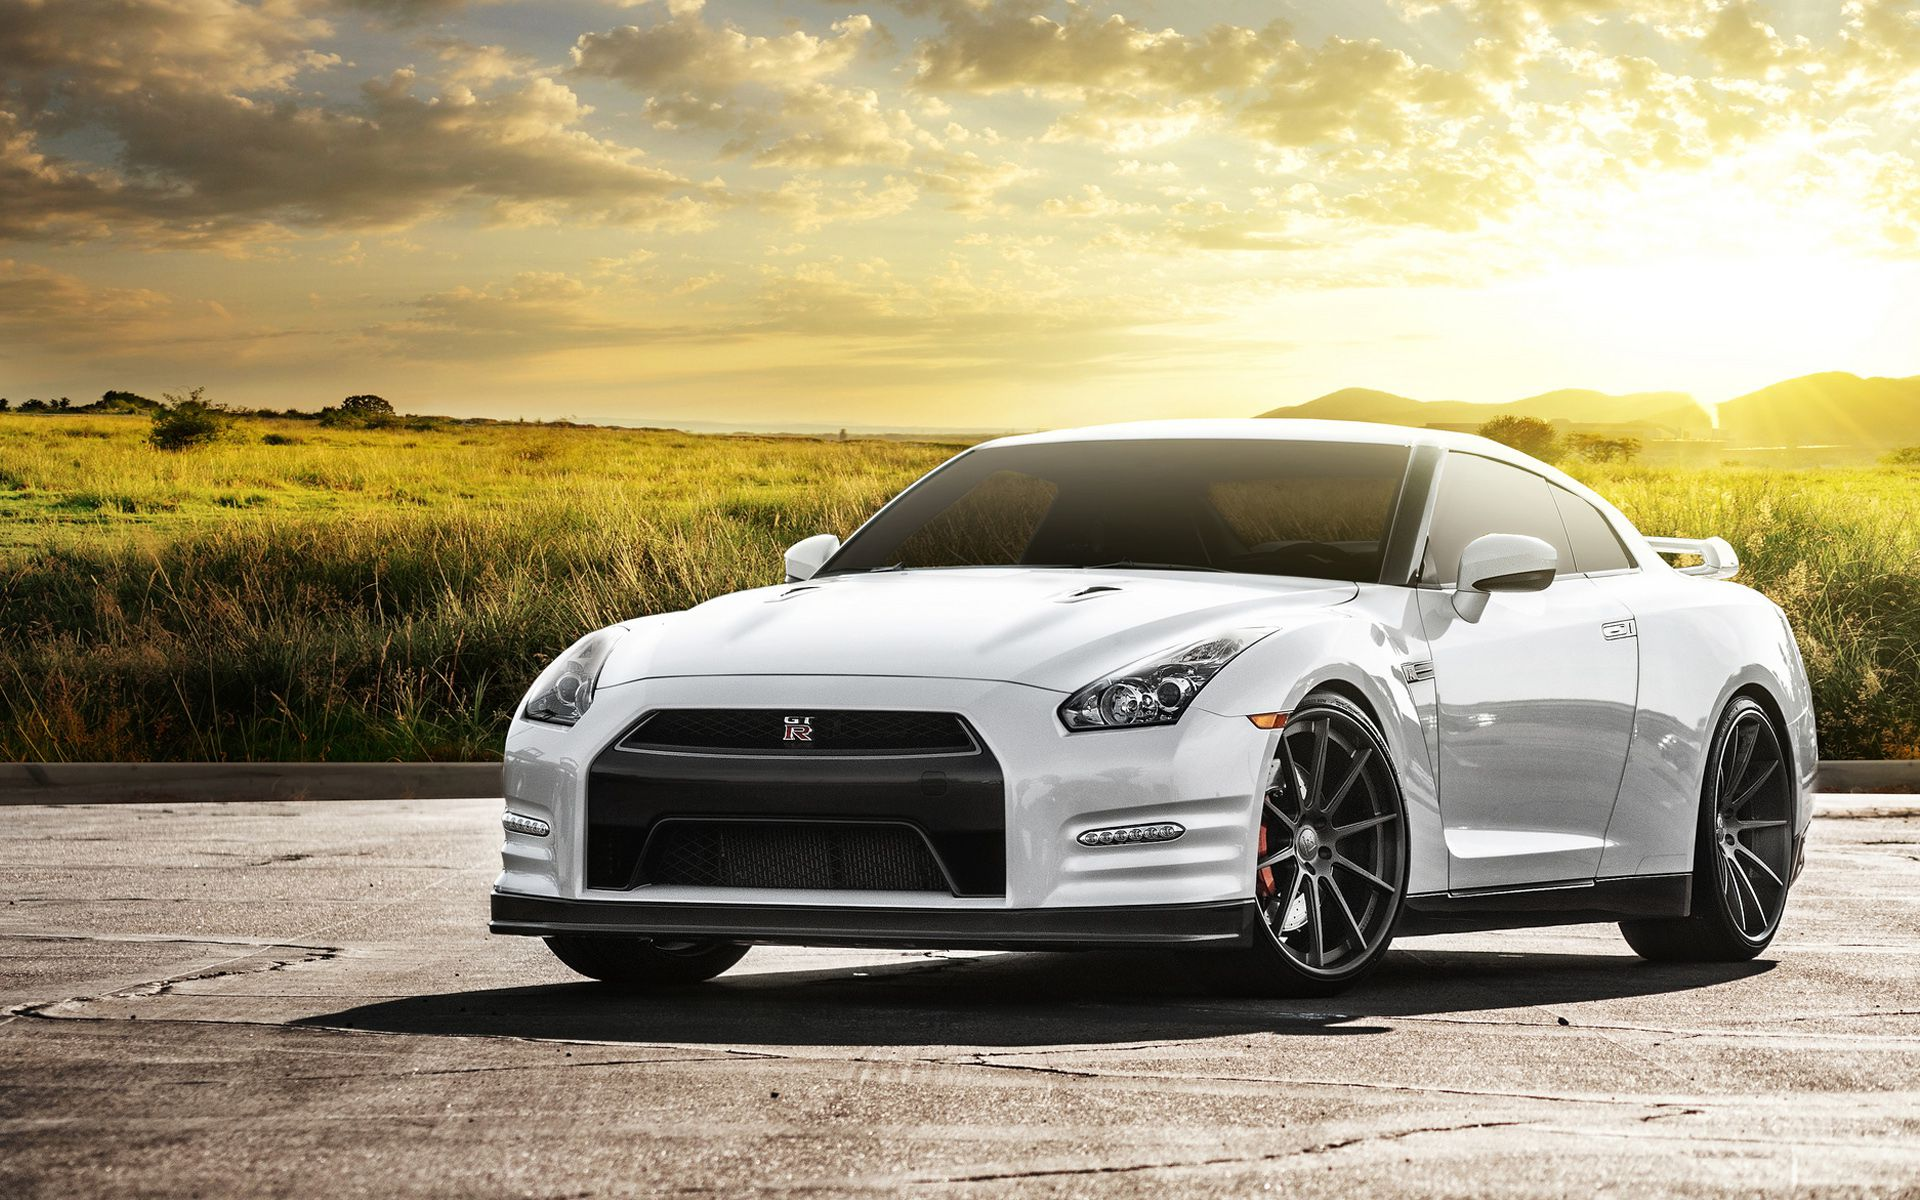 coolest gtr wallpapers - photo #6